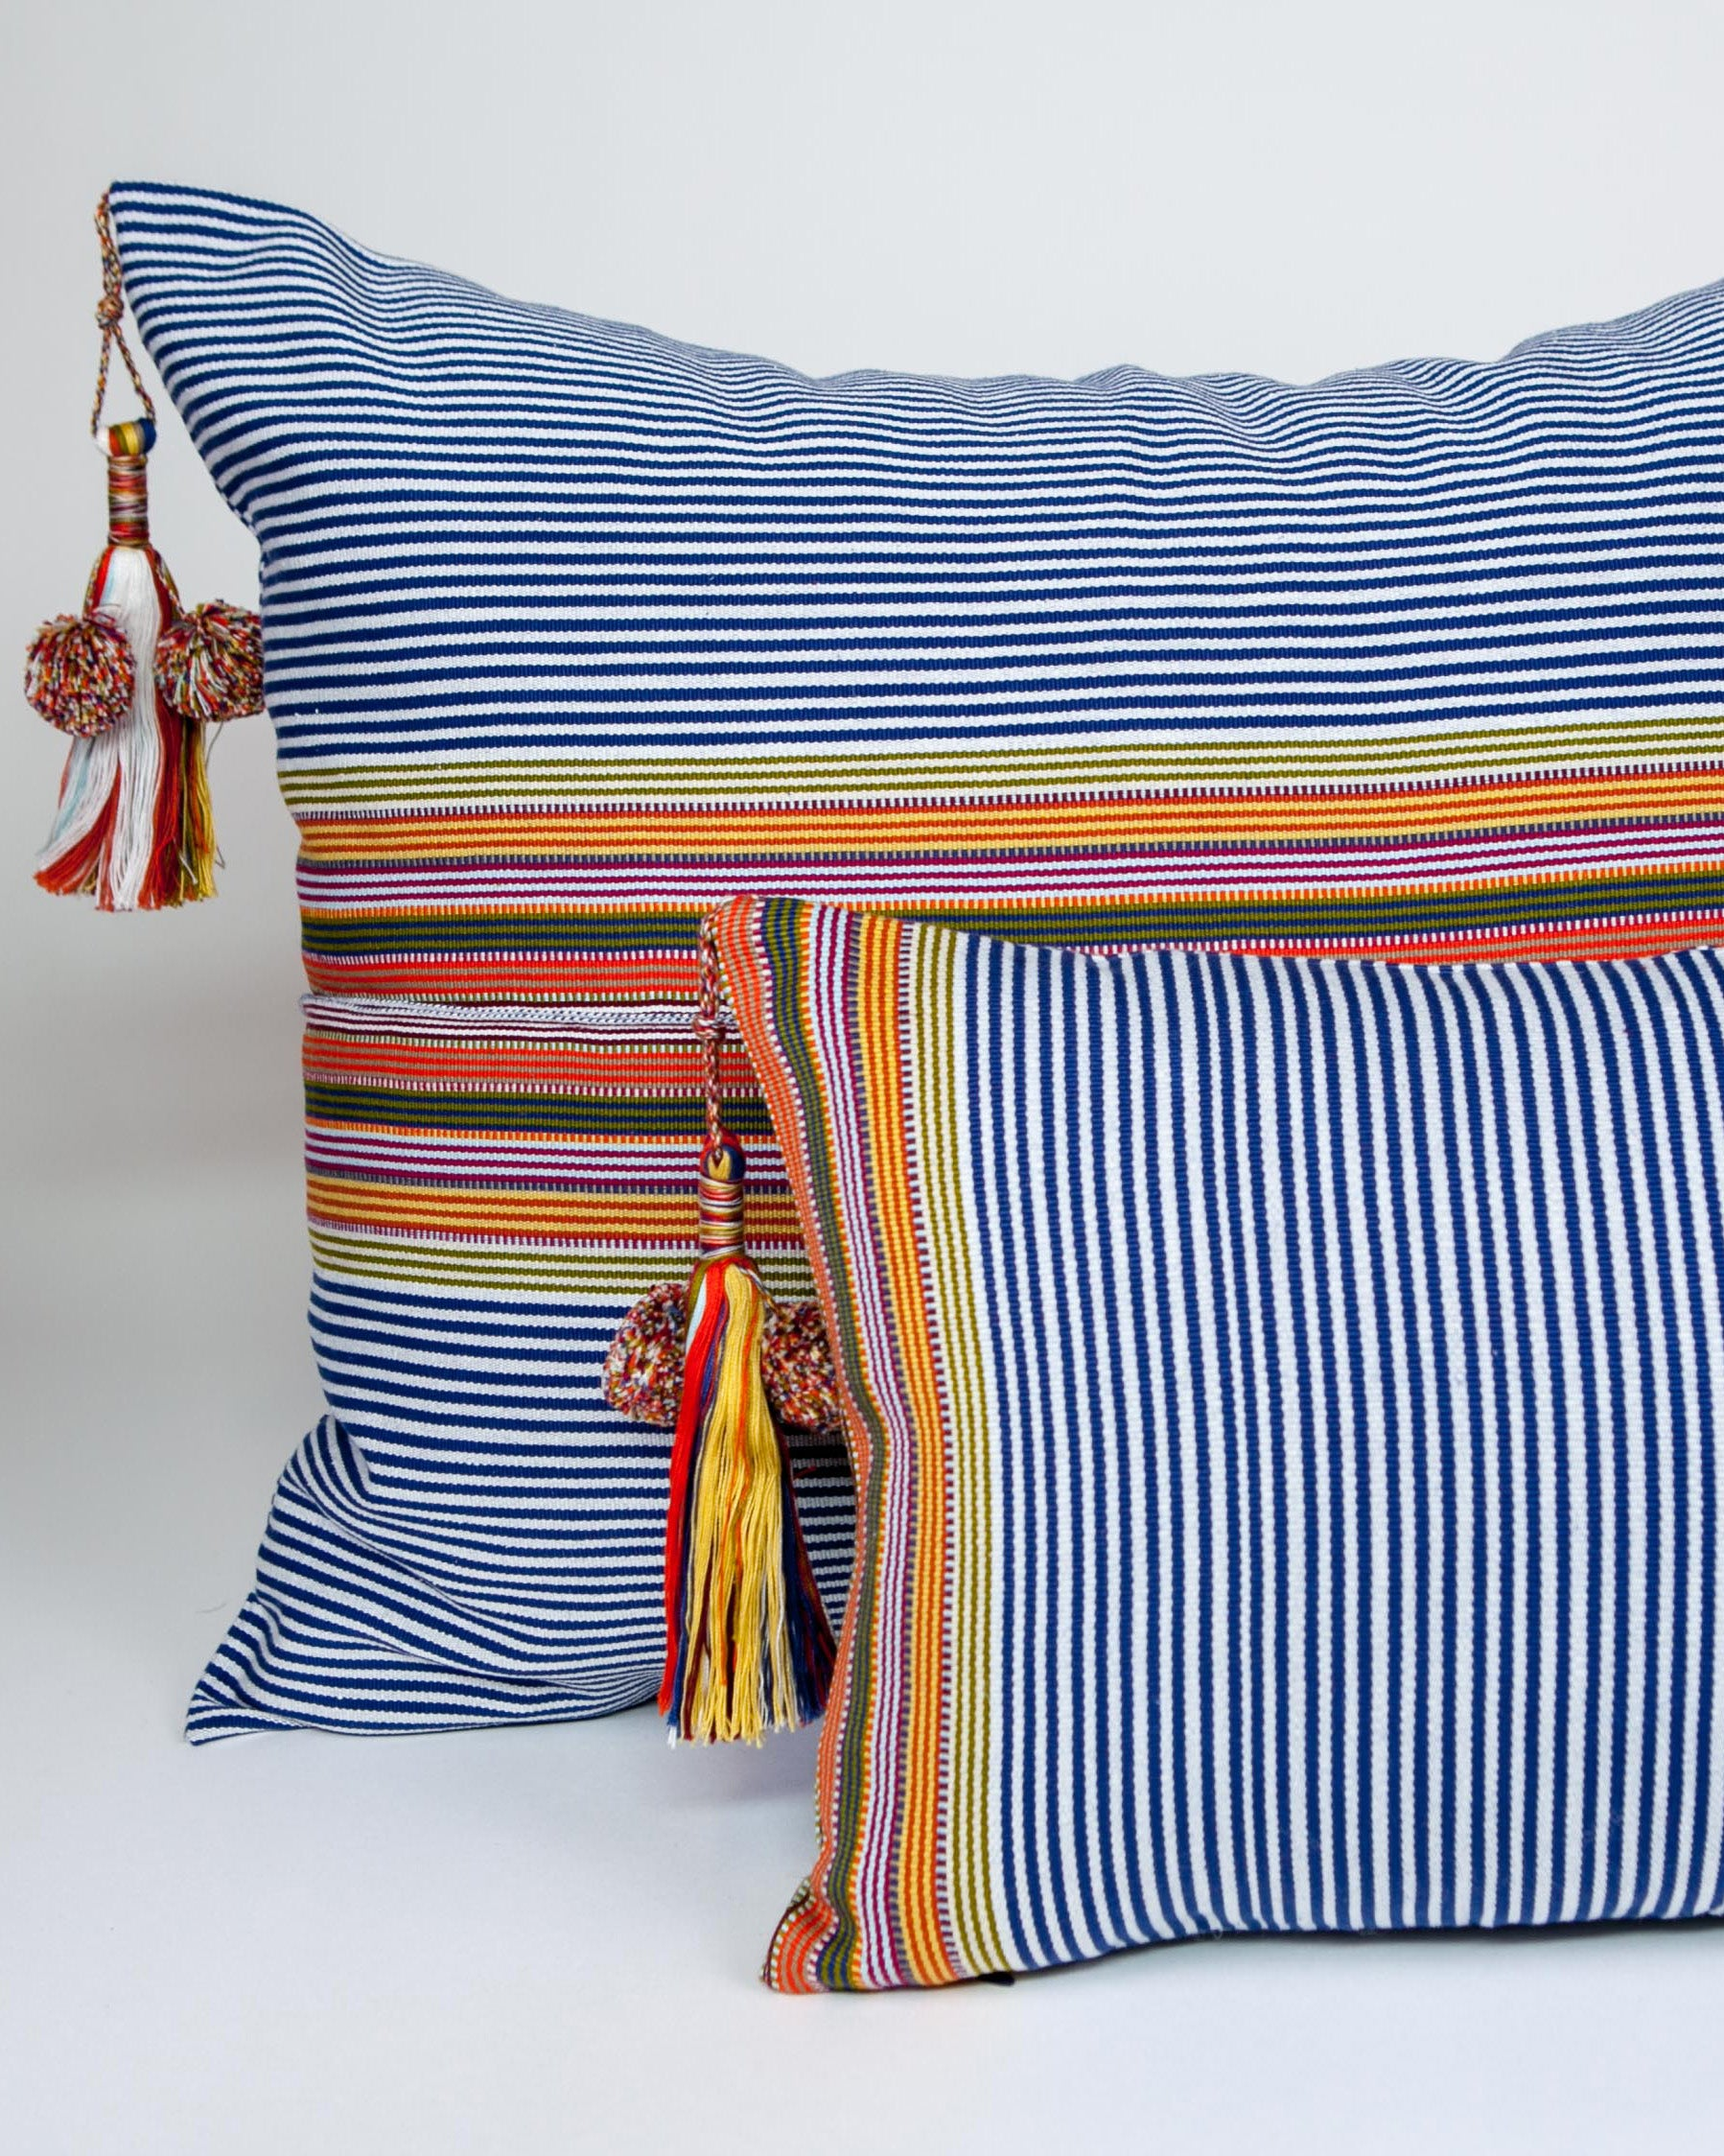 Handwoven cotton pillows with colored tassels blue and orange